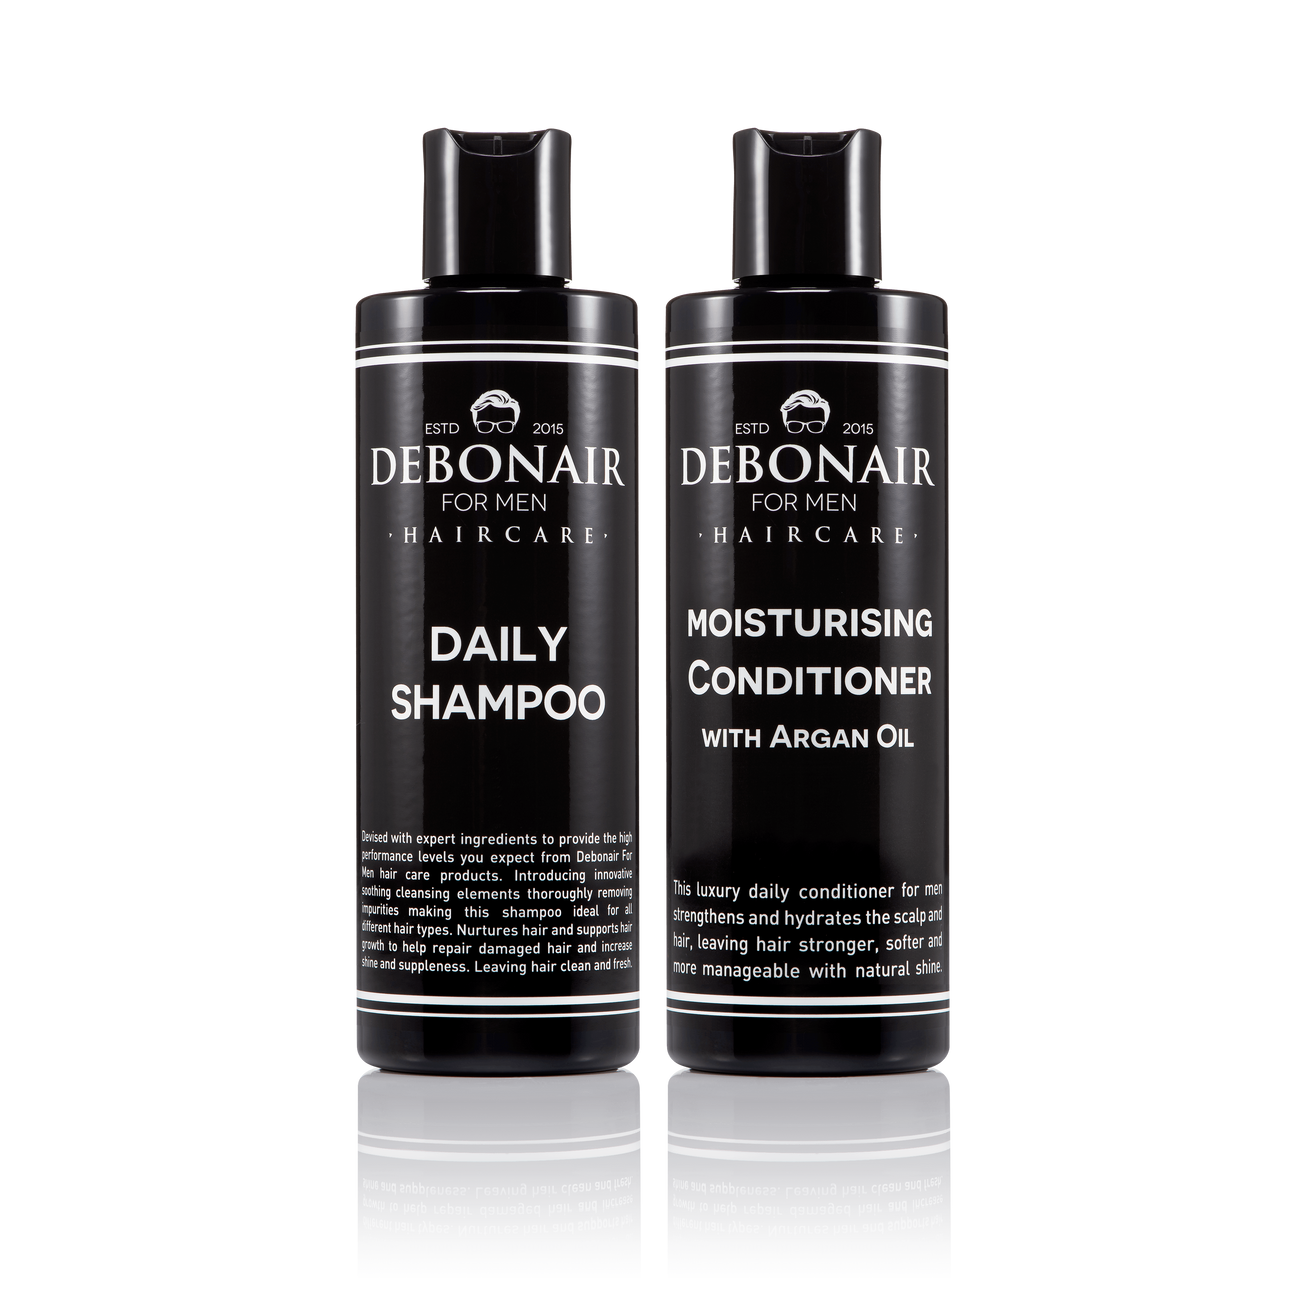 Daily Shampoo and Moisturising Conditioner